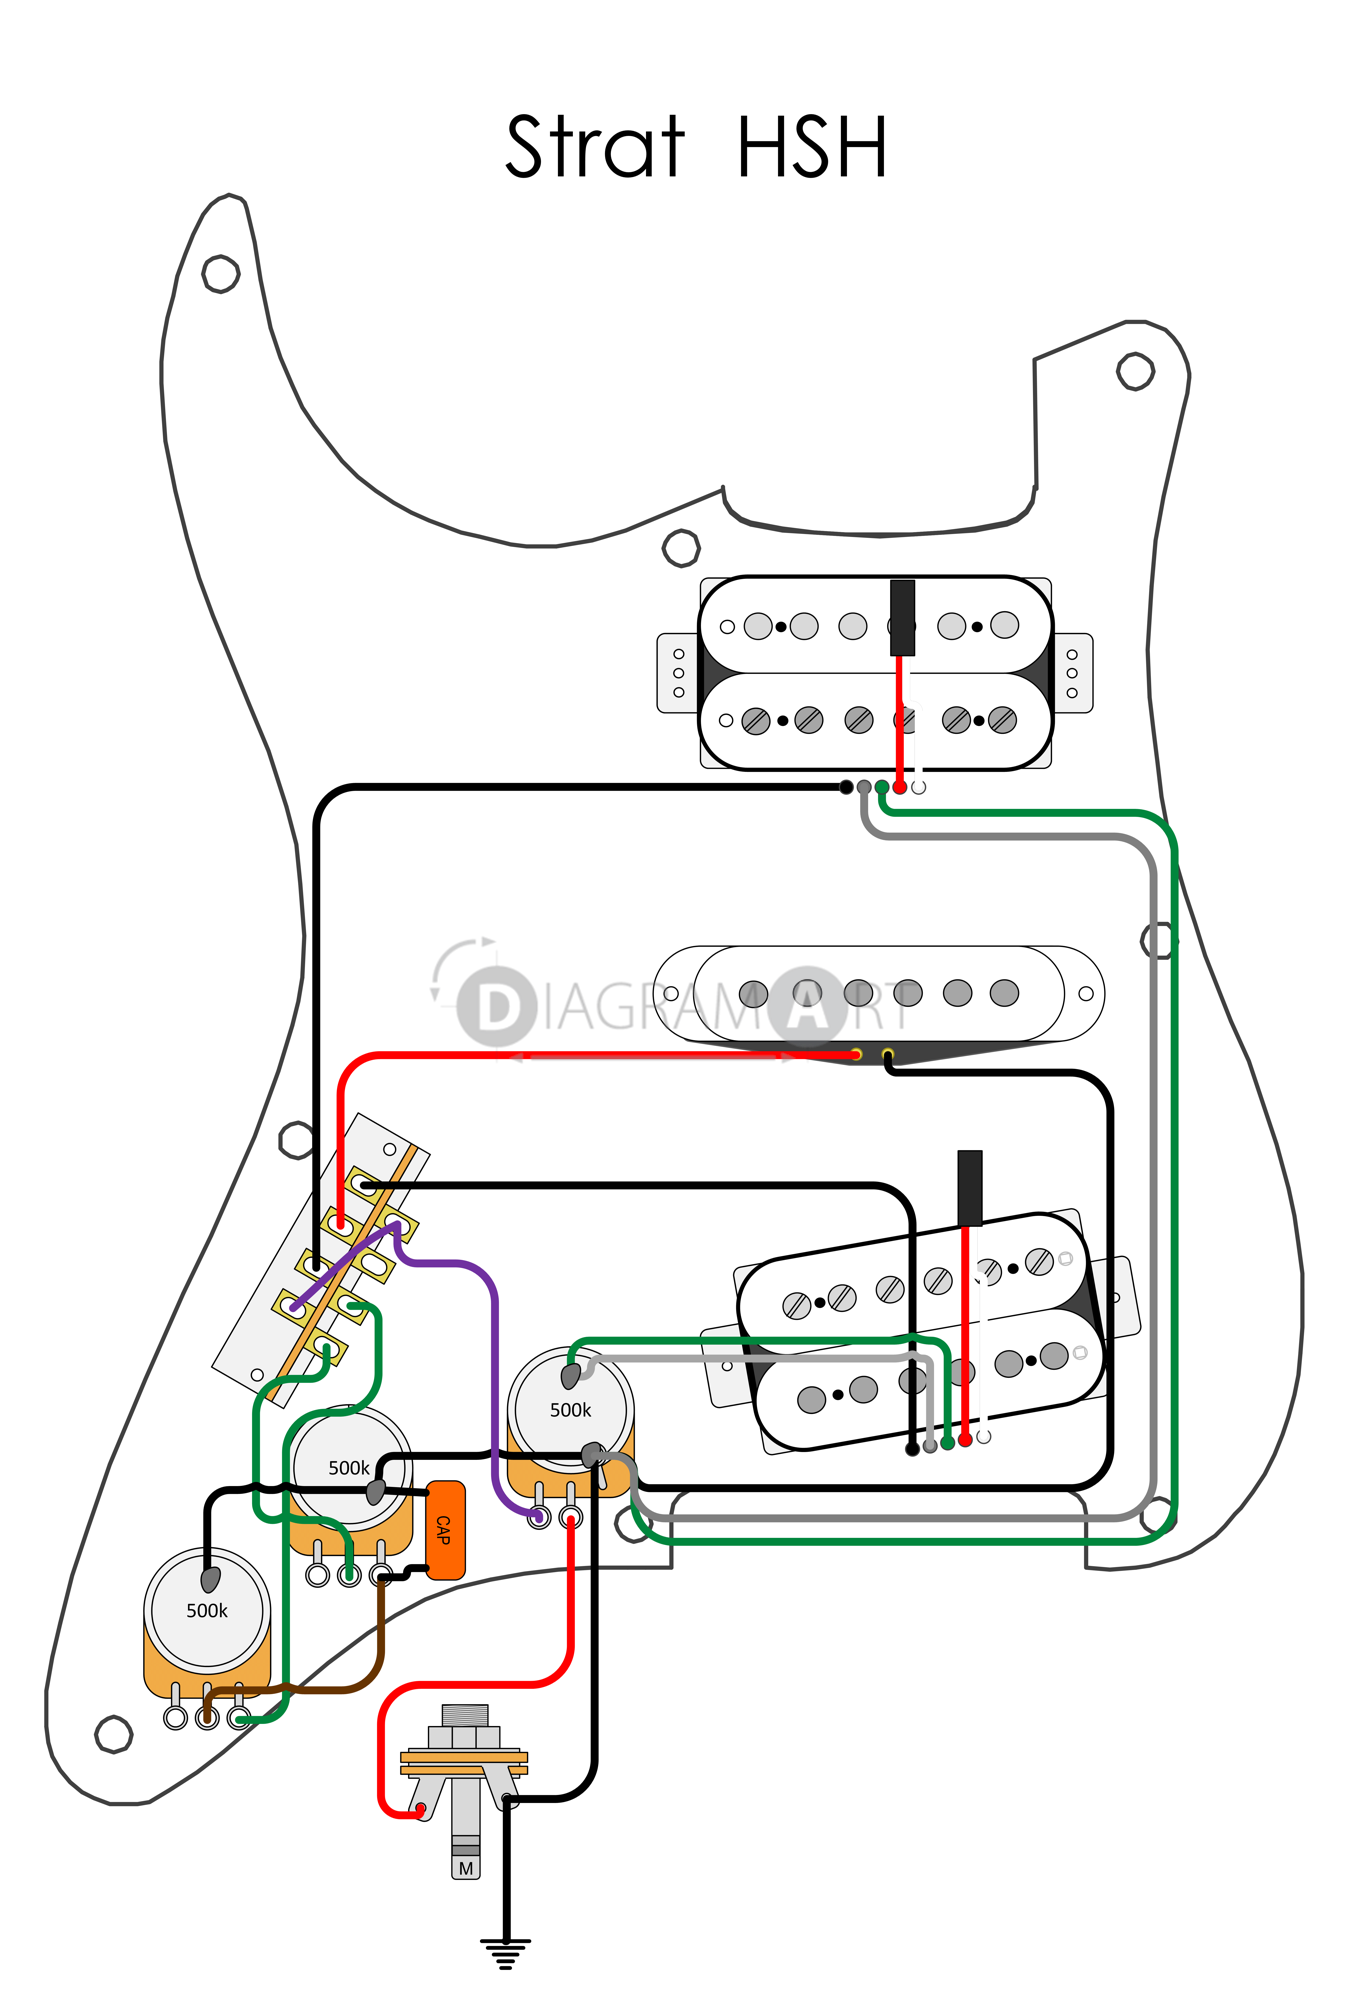 download_ef870d50 d966 419d a0f4 22998adecec6?v=1476390216 electric guitar wiring strat hsh [electric circuit] diagramart strat hsh wiring diagram at gsmx.co